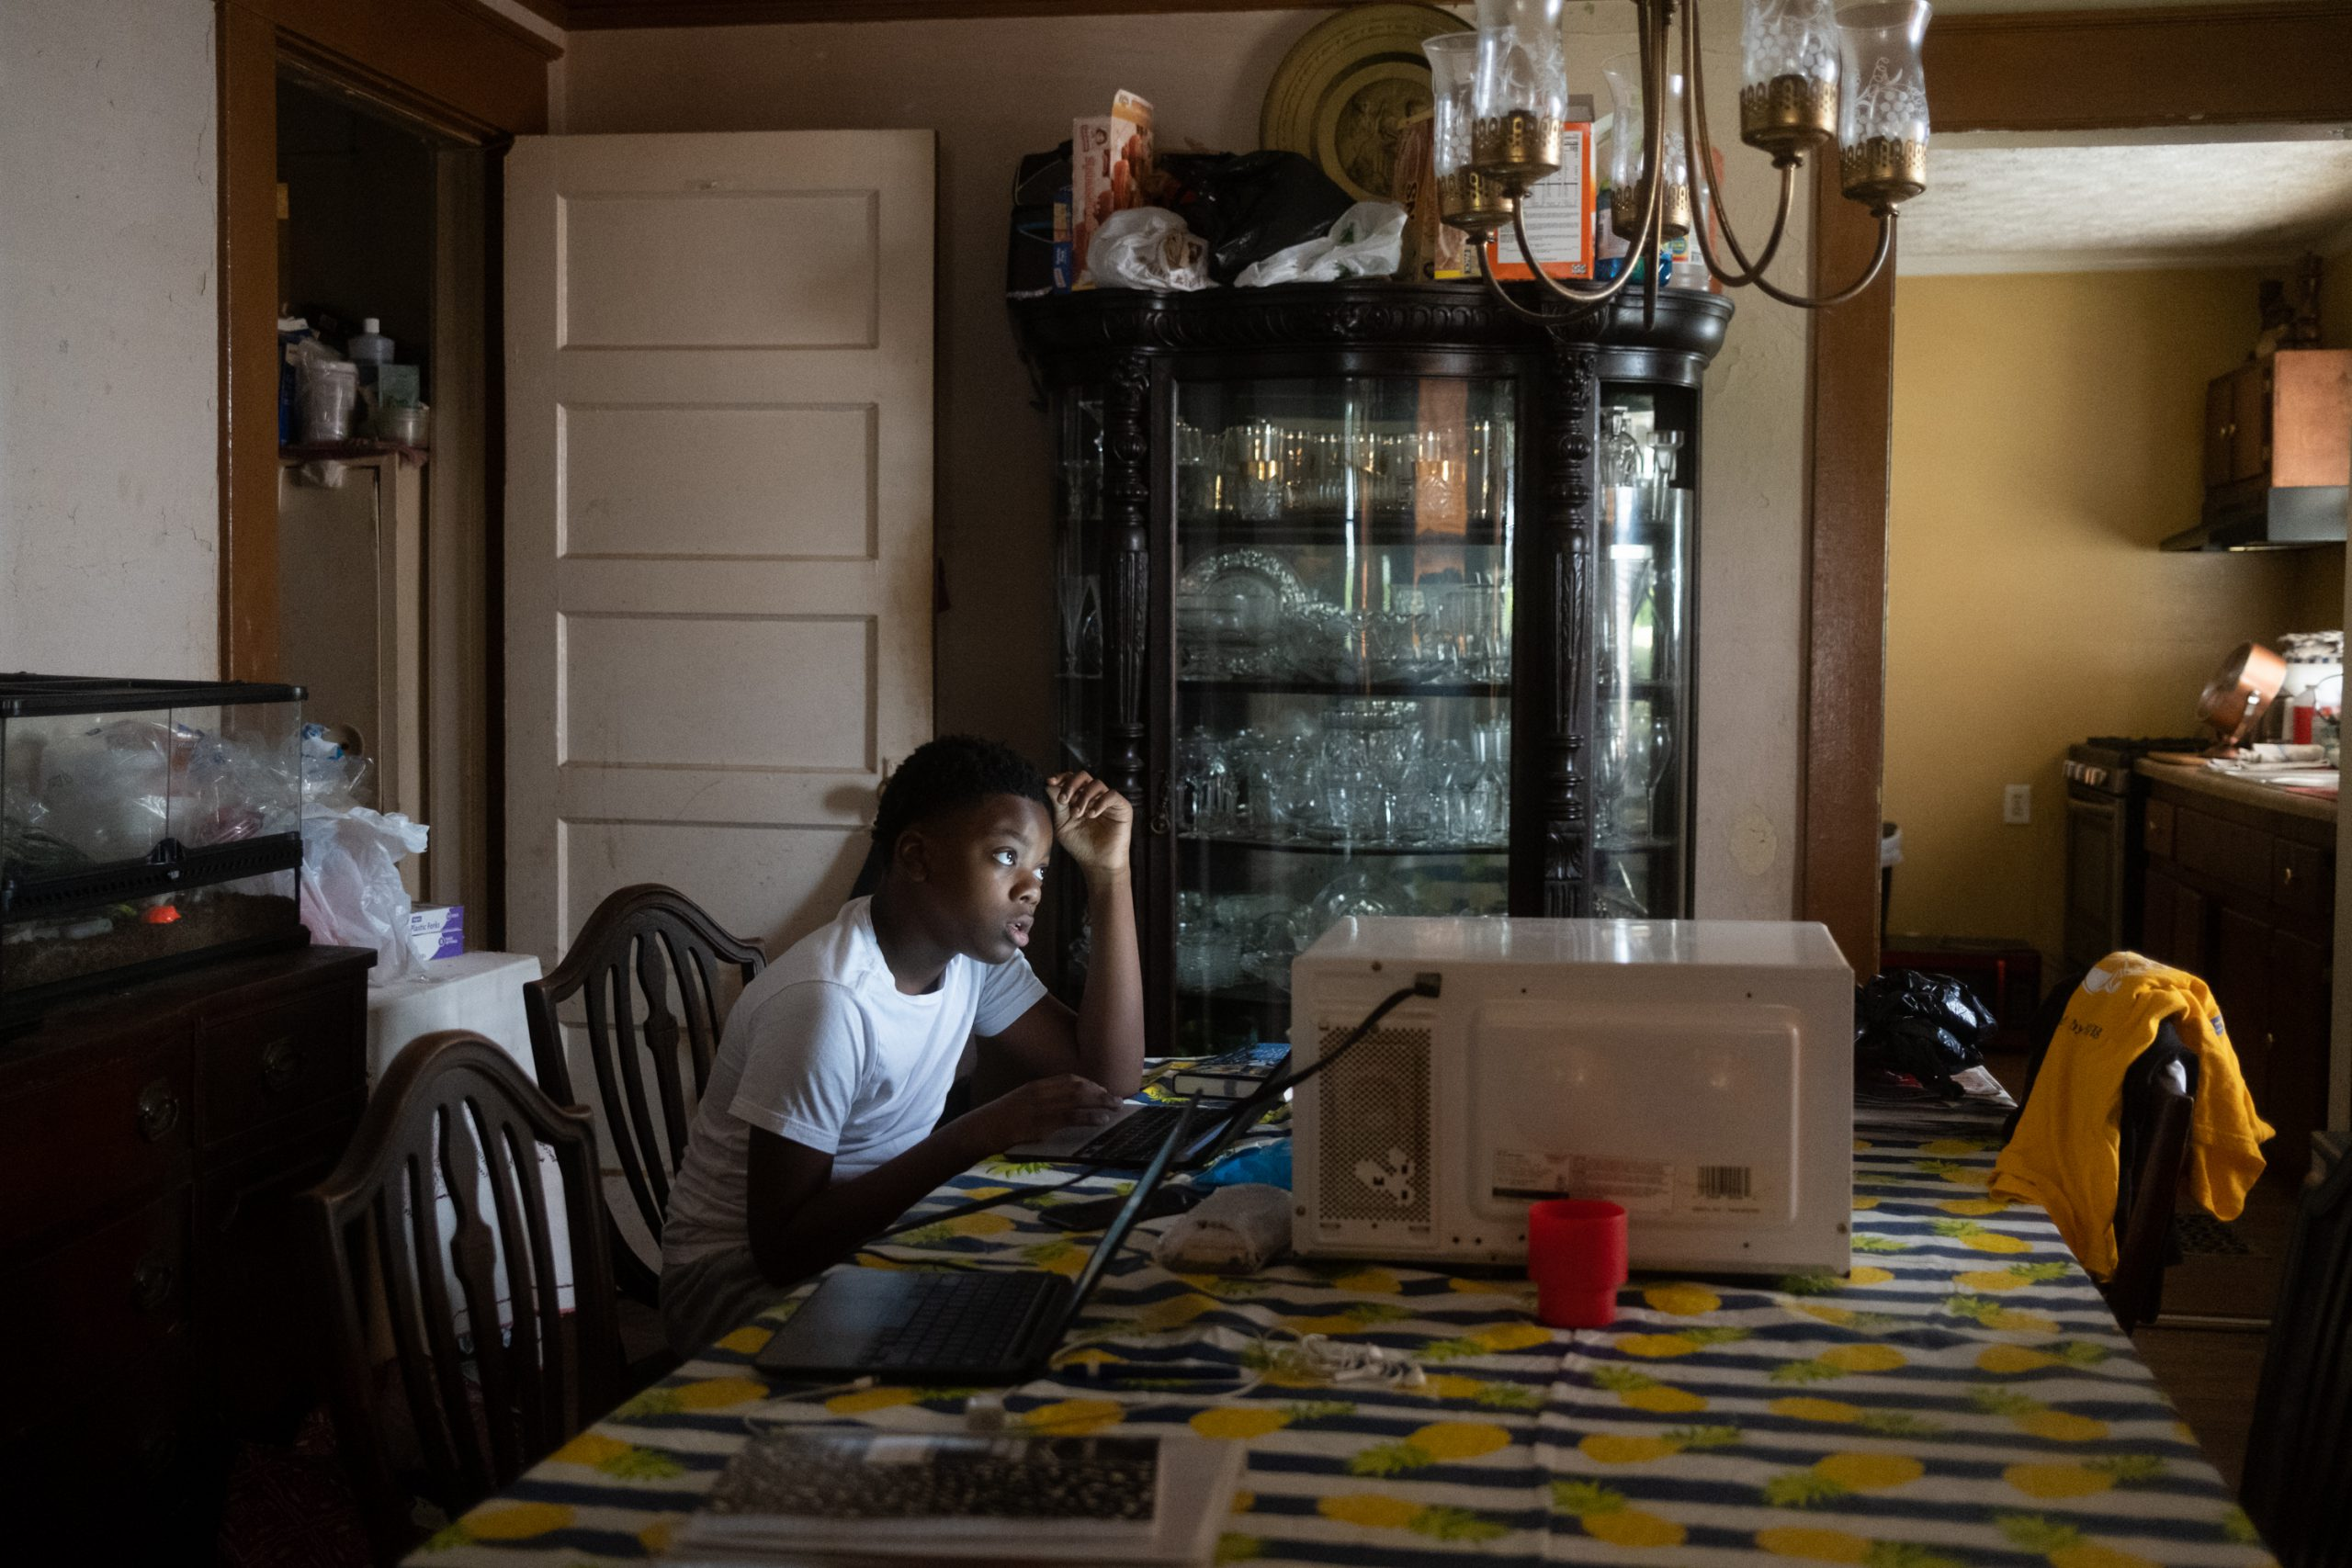 A teenager looks up from his laptop in his dining room